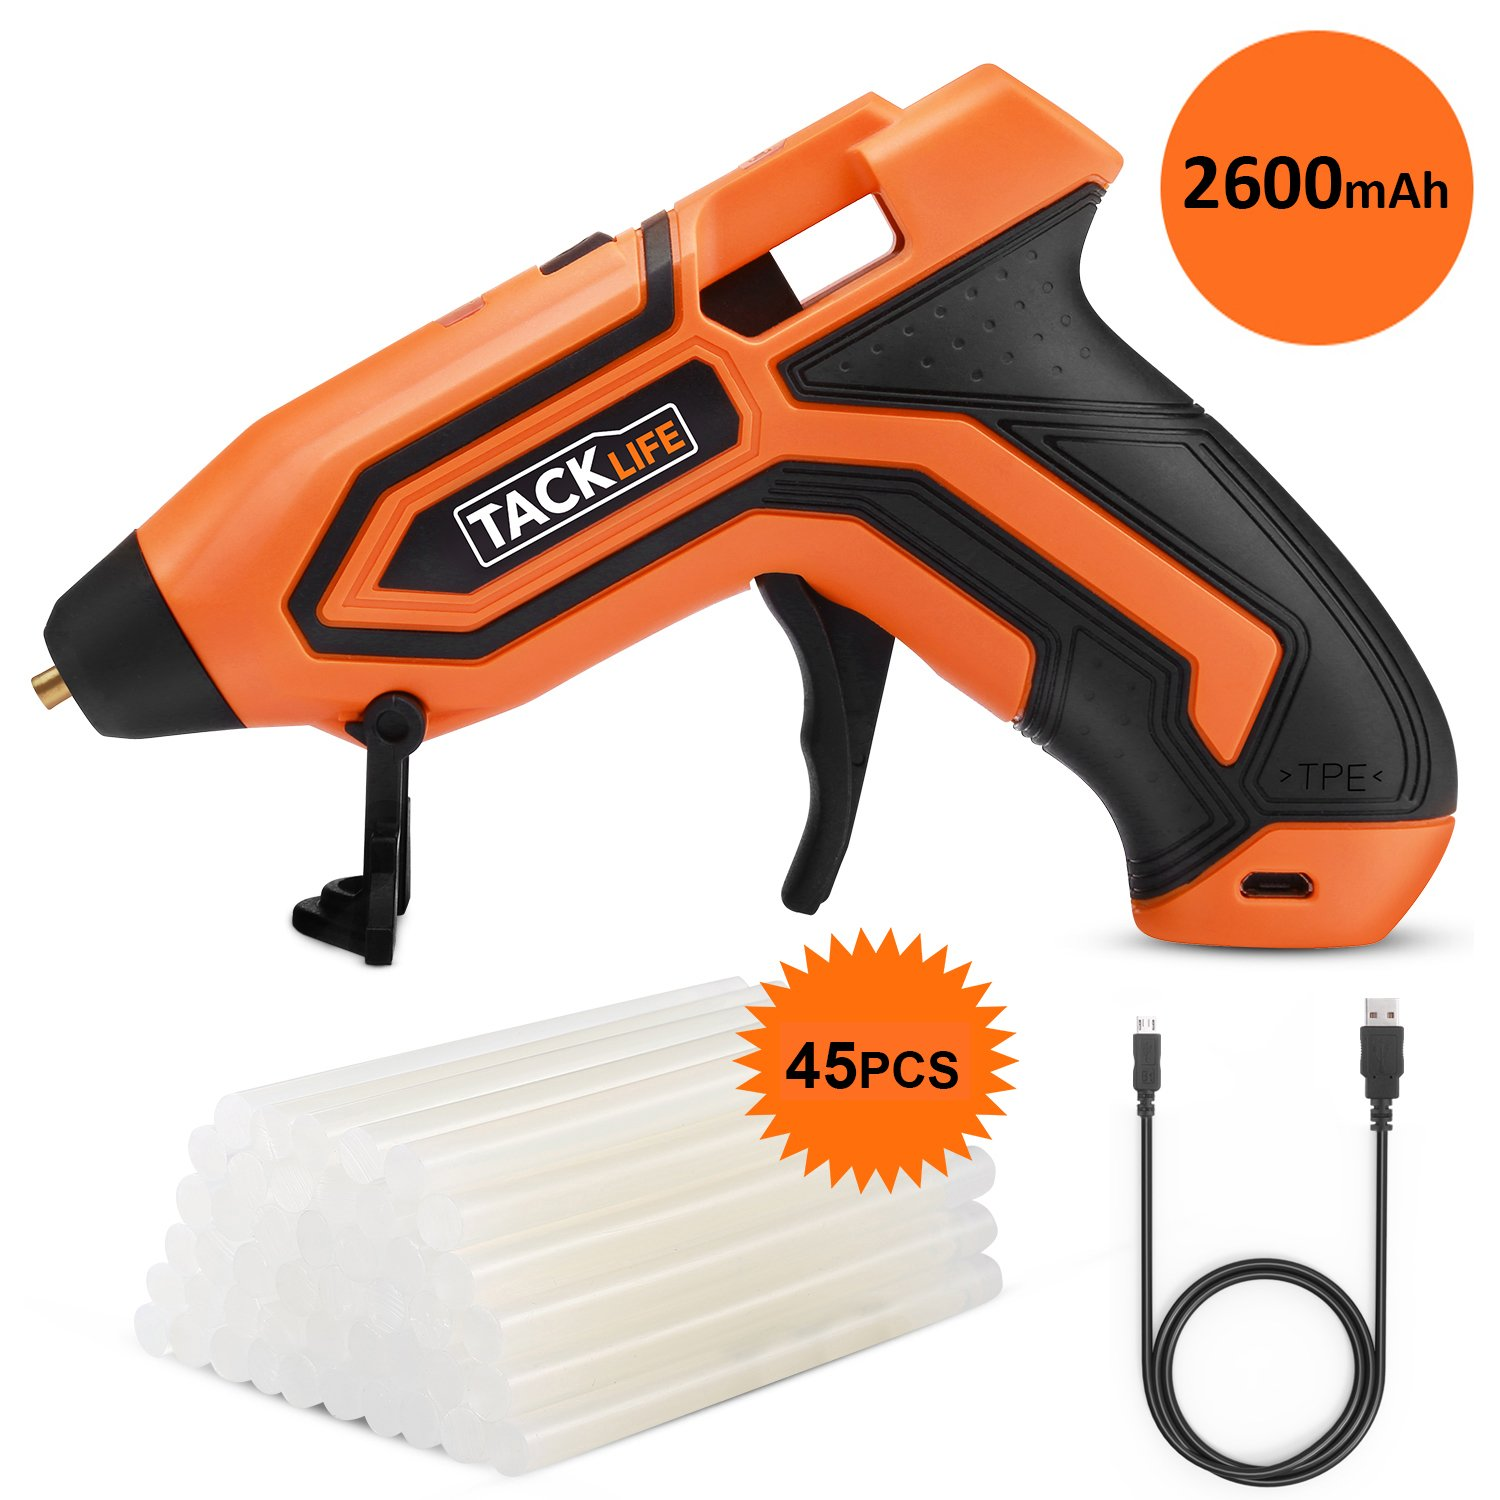 Glue Gun, 3.6V Mini Cordless Glue Gun 2600mAh-18650 USB Rechargeable Li-ion Battery with 45 PCS EVA Glue Sticks Flexible Trigger & Heating up Quickly TACKLIFE